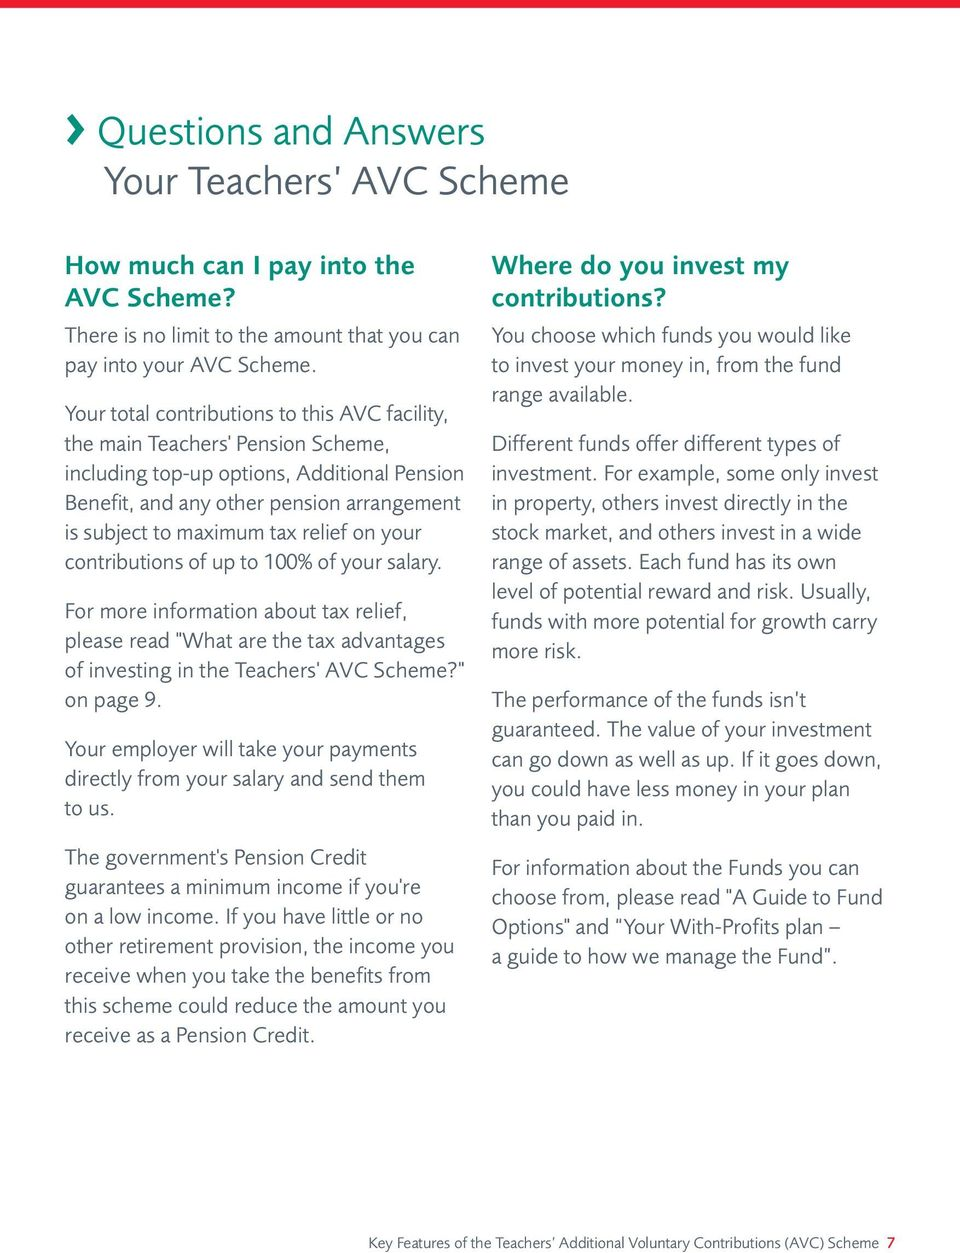 "relief on your contributions of up to 100% of your salary. For more information about tax relief, please read ""What are the tax advantages of investing in the Teachers' AVC Scheme?"" on page 9."